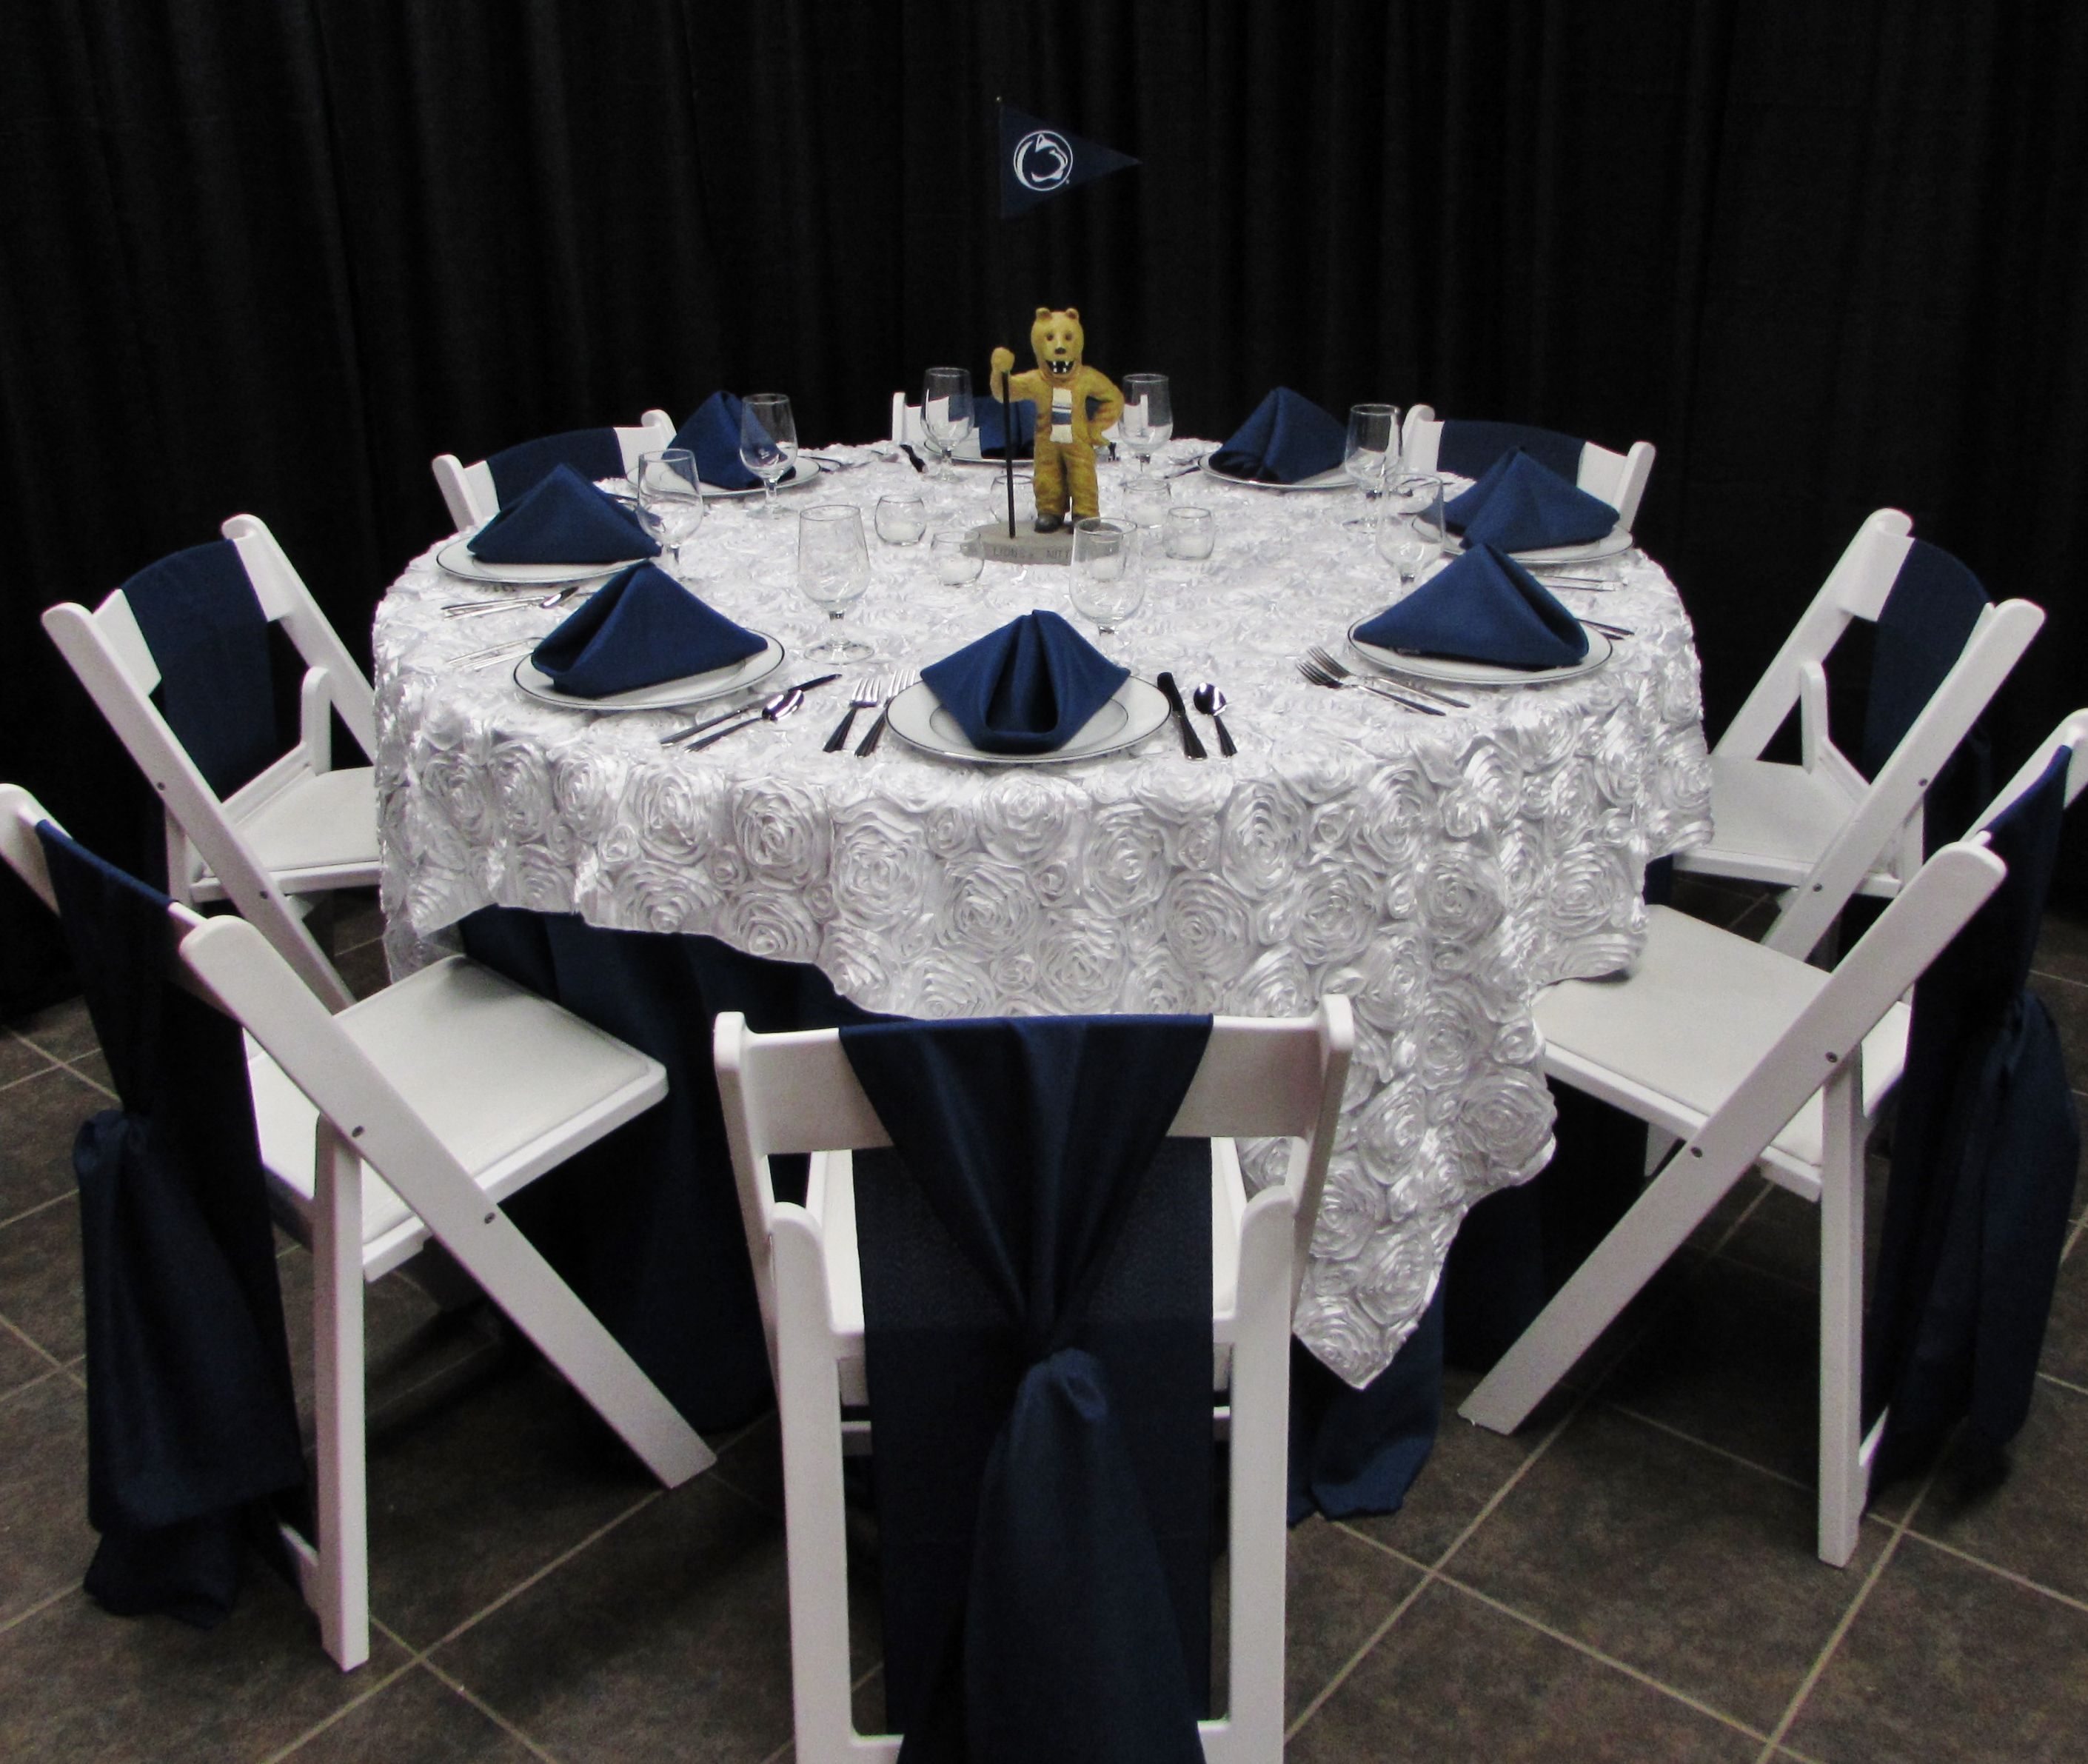 We Love The Soft Elegant Textures With This White Rosette Table